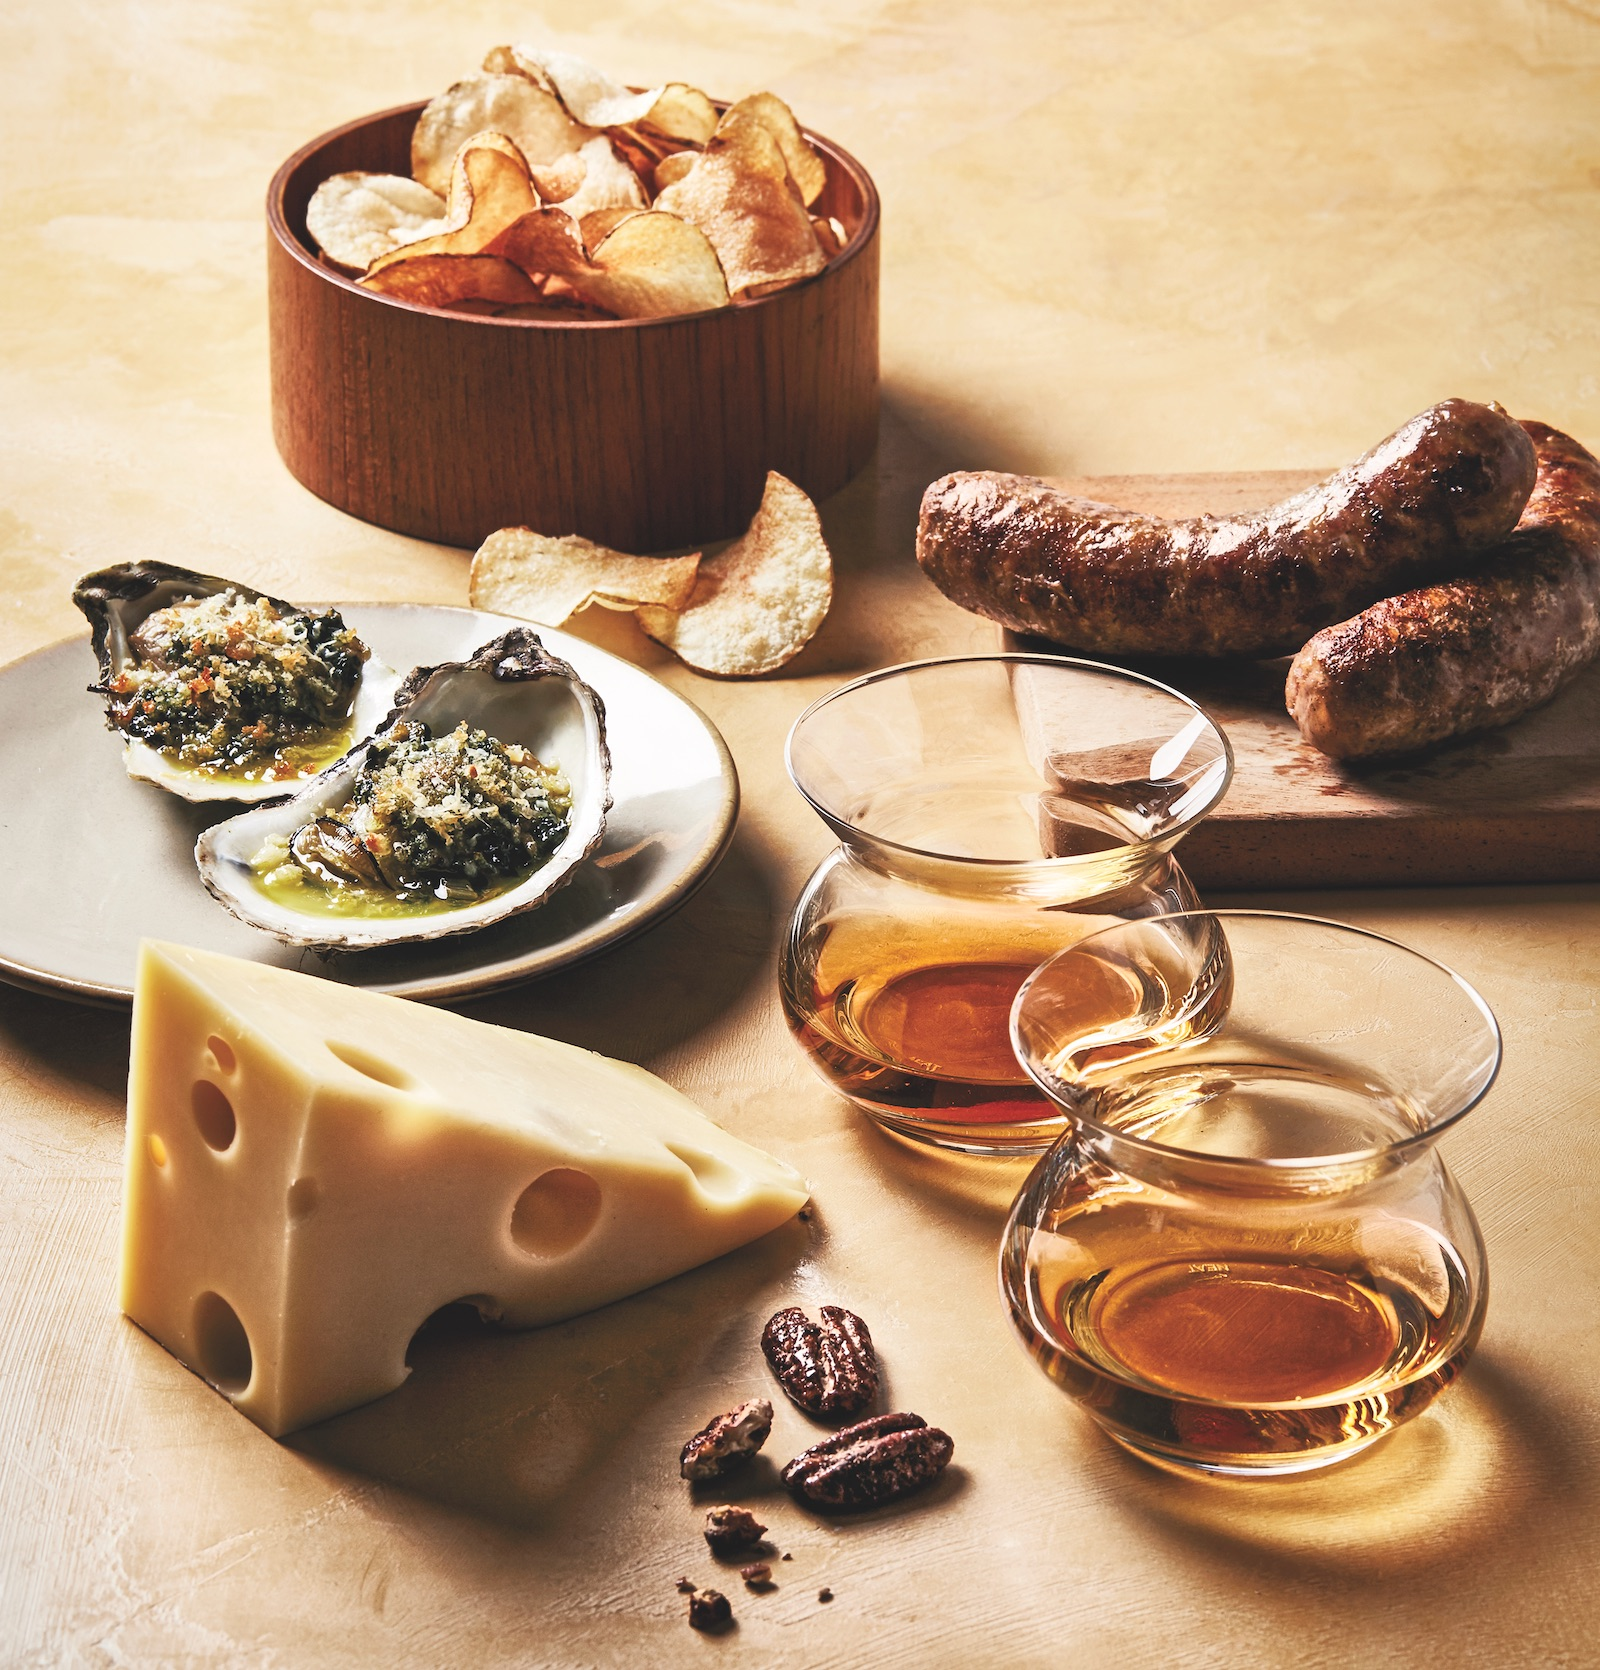 chips, oysters, cheese, sausage, and nuts with two glasses of bourbon